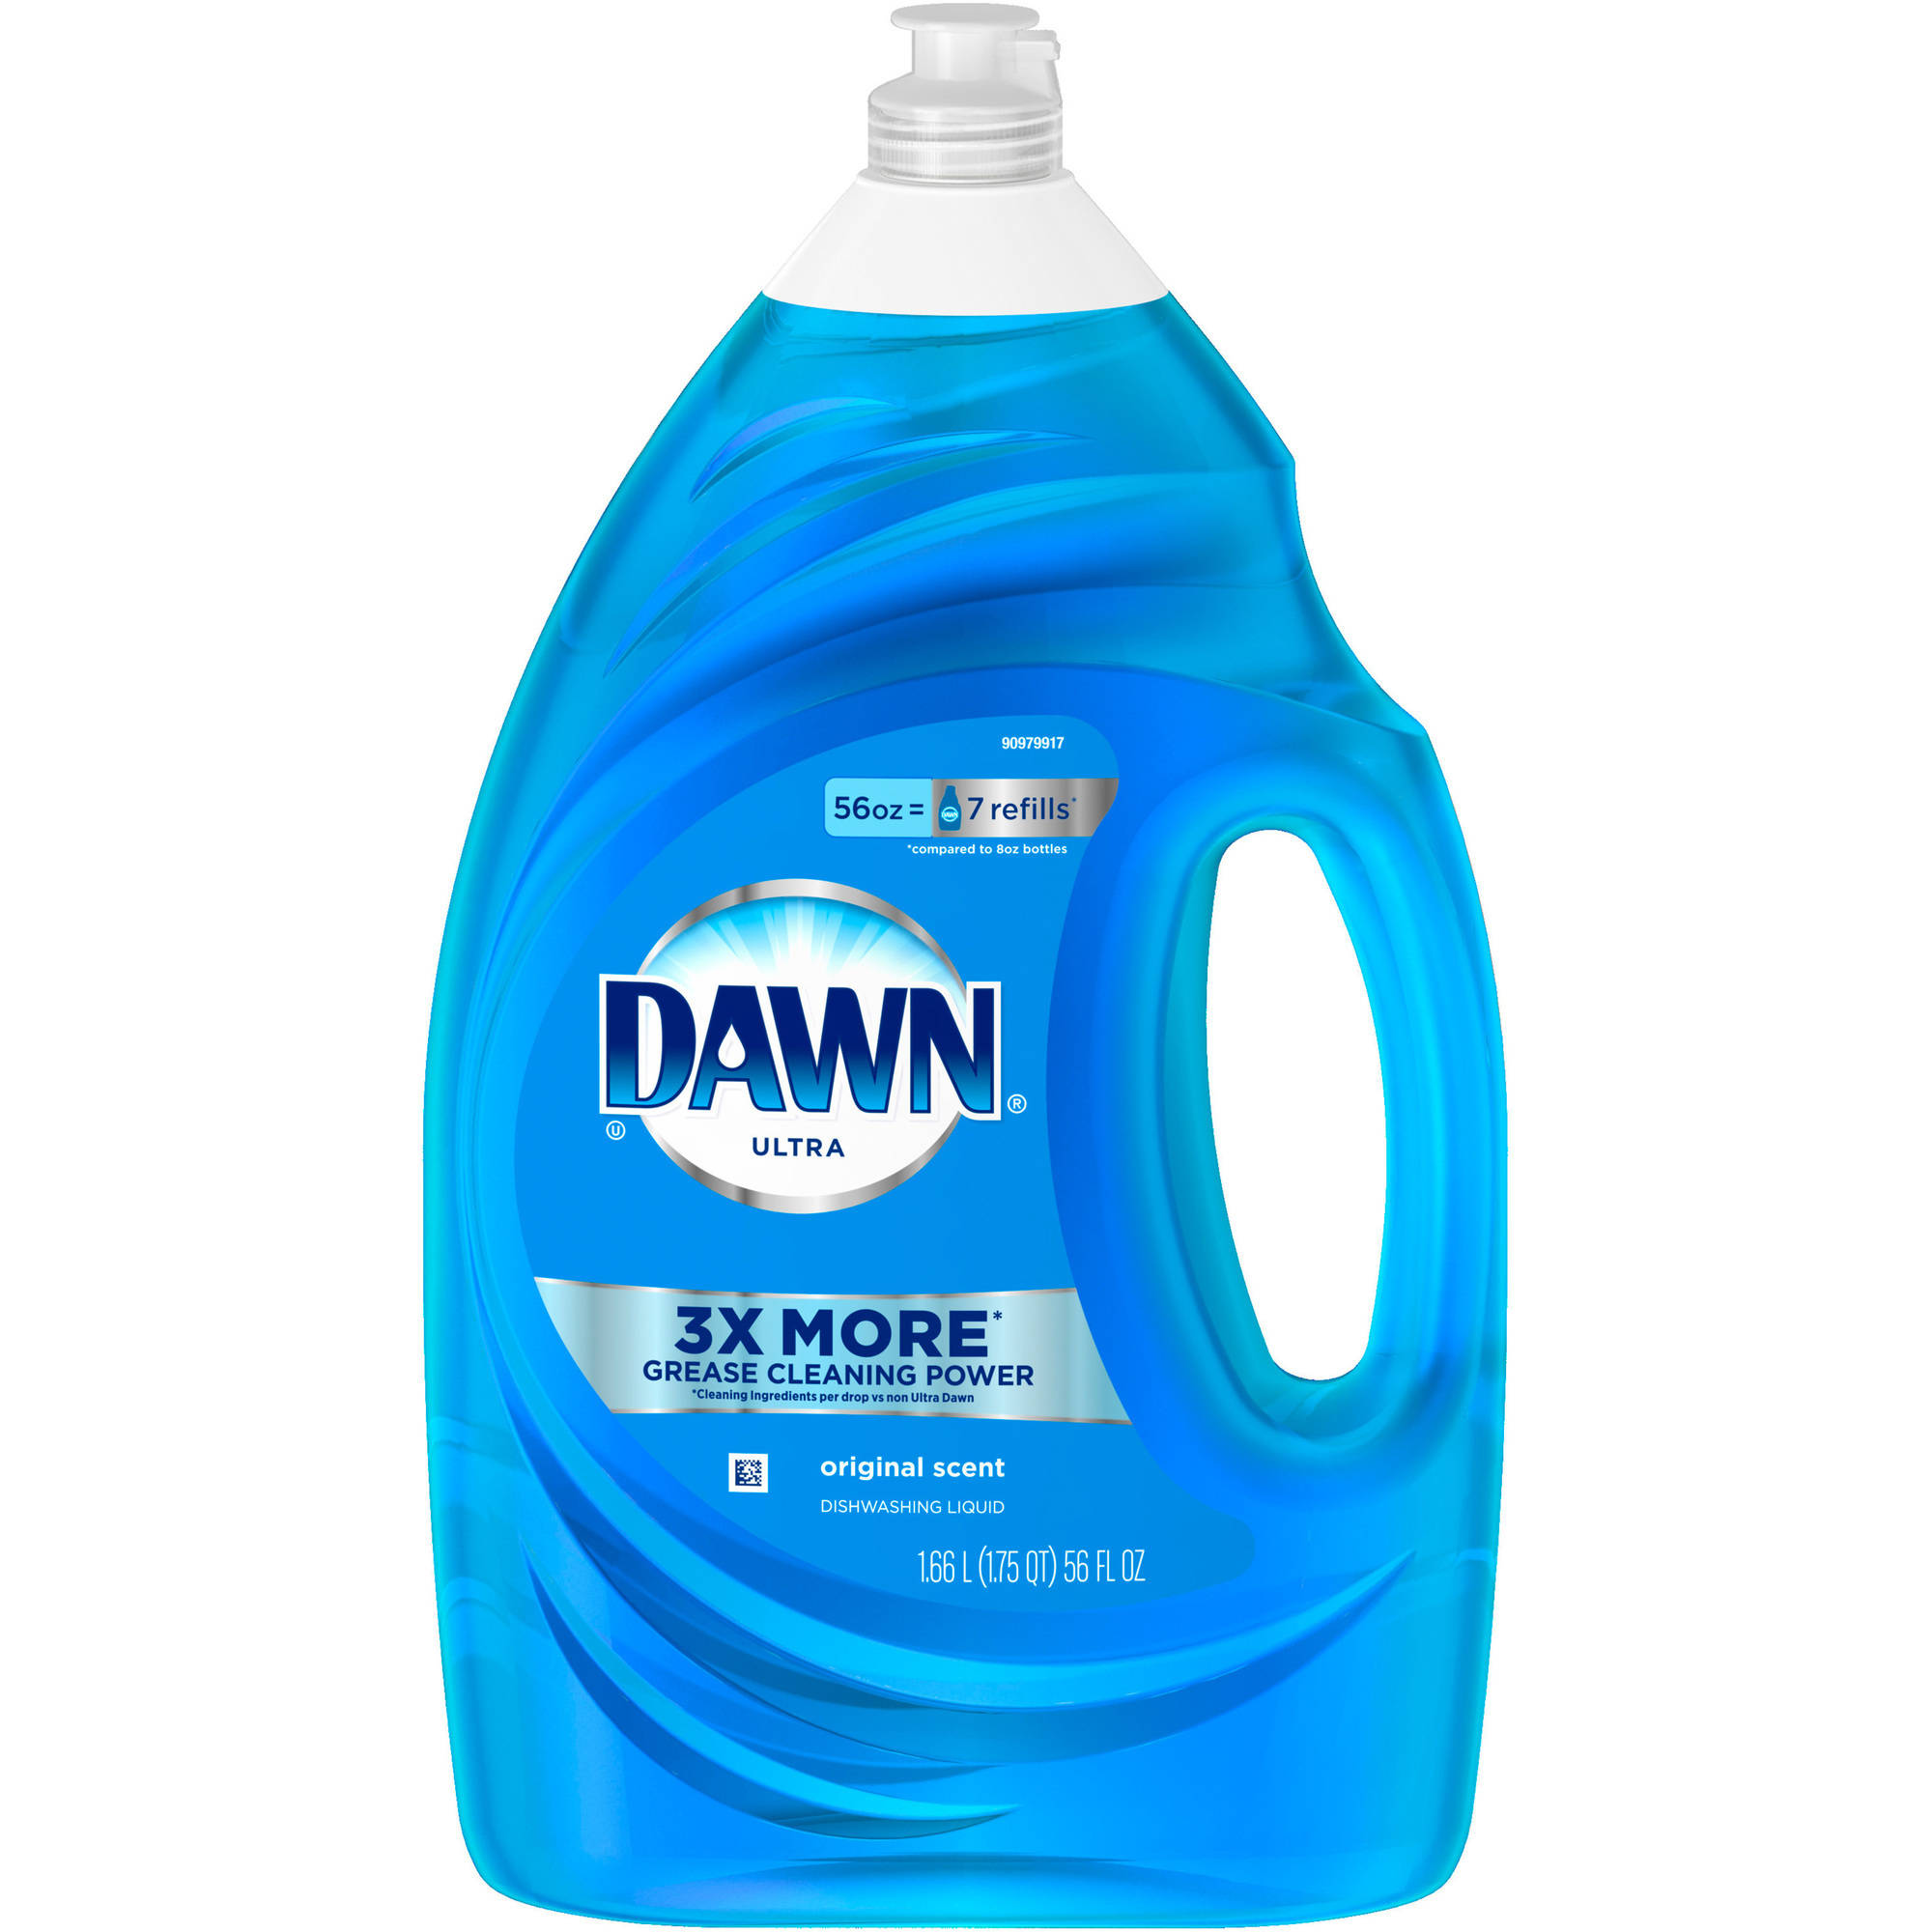 Say bon voyage to dirty dishes and hello to indulgent scents with Dawn® Escapes™ dishwashing liquid dish soap. Dawn Escapes has 2X MORE Grease Cleaning Power per drop,* so your dish soap can really take you places. Dive into an exotic adventure today, and experience how your dishwashing routine can go from ordinary to extraordinary.